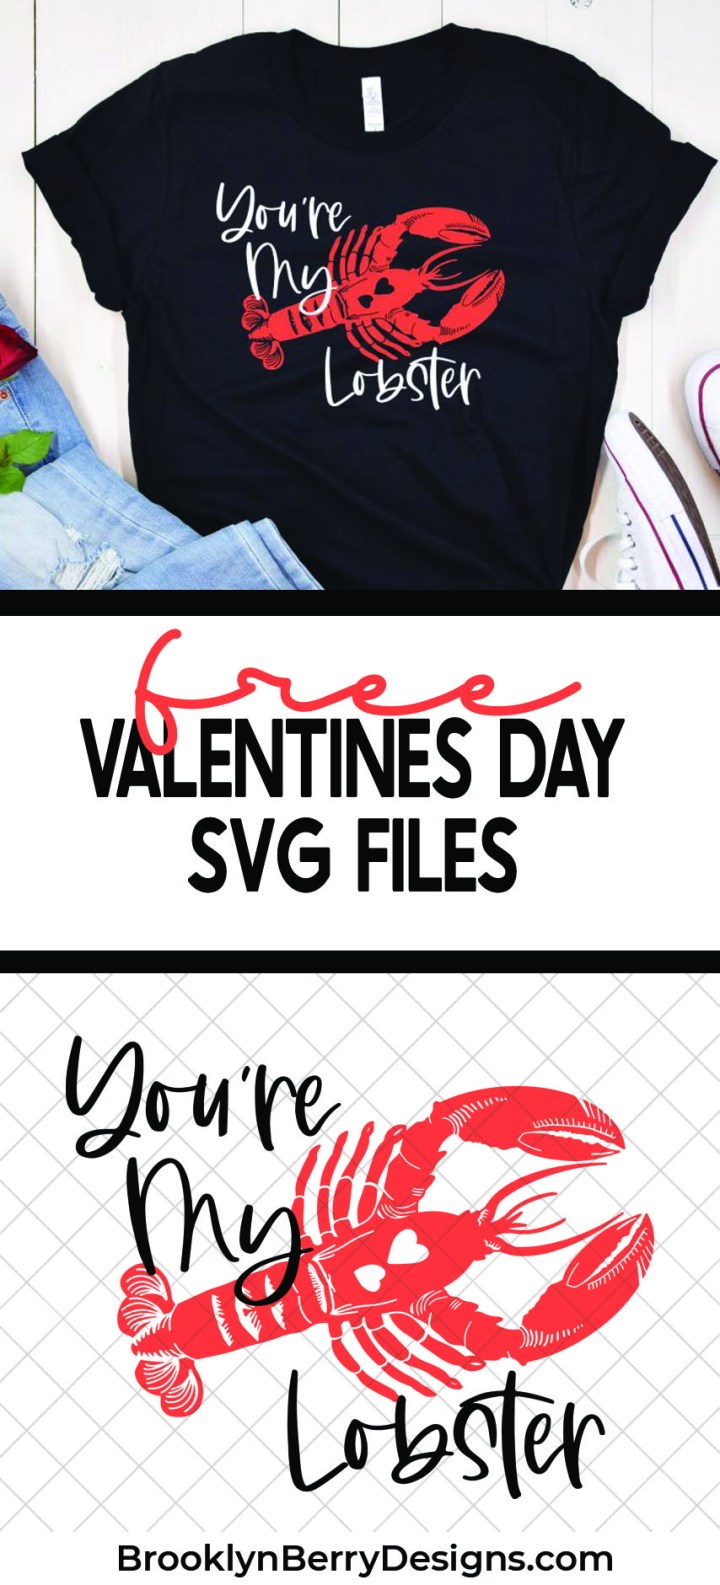 Friends fans will know. Make your own funny valentines shirt with this Friends show You're My Lobster SVG. via @brookeberry